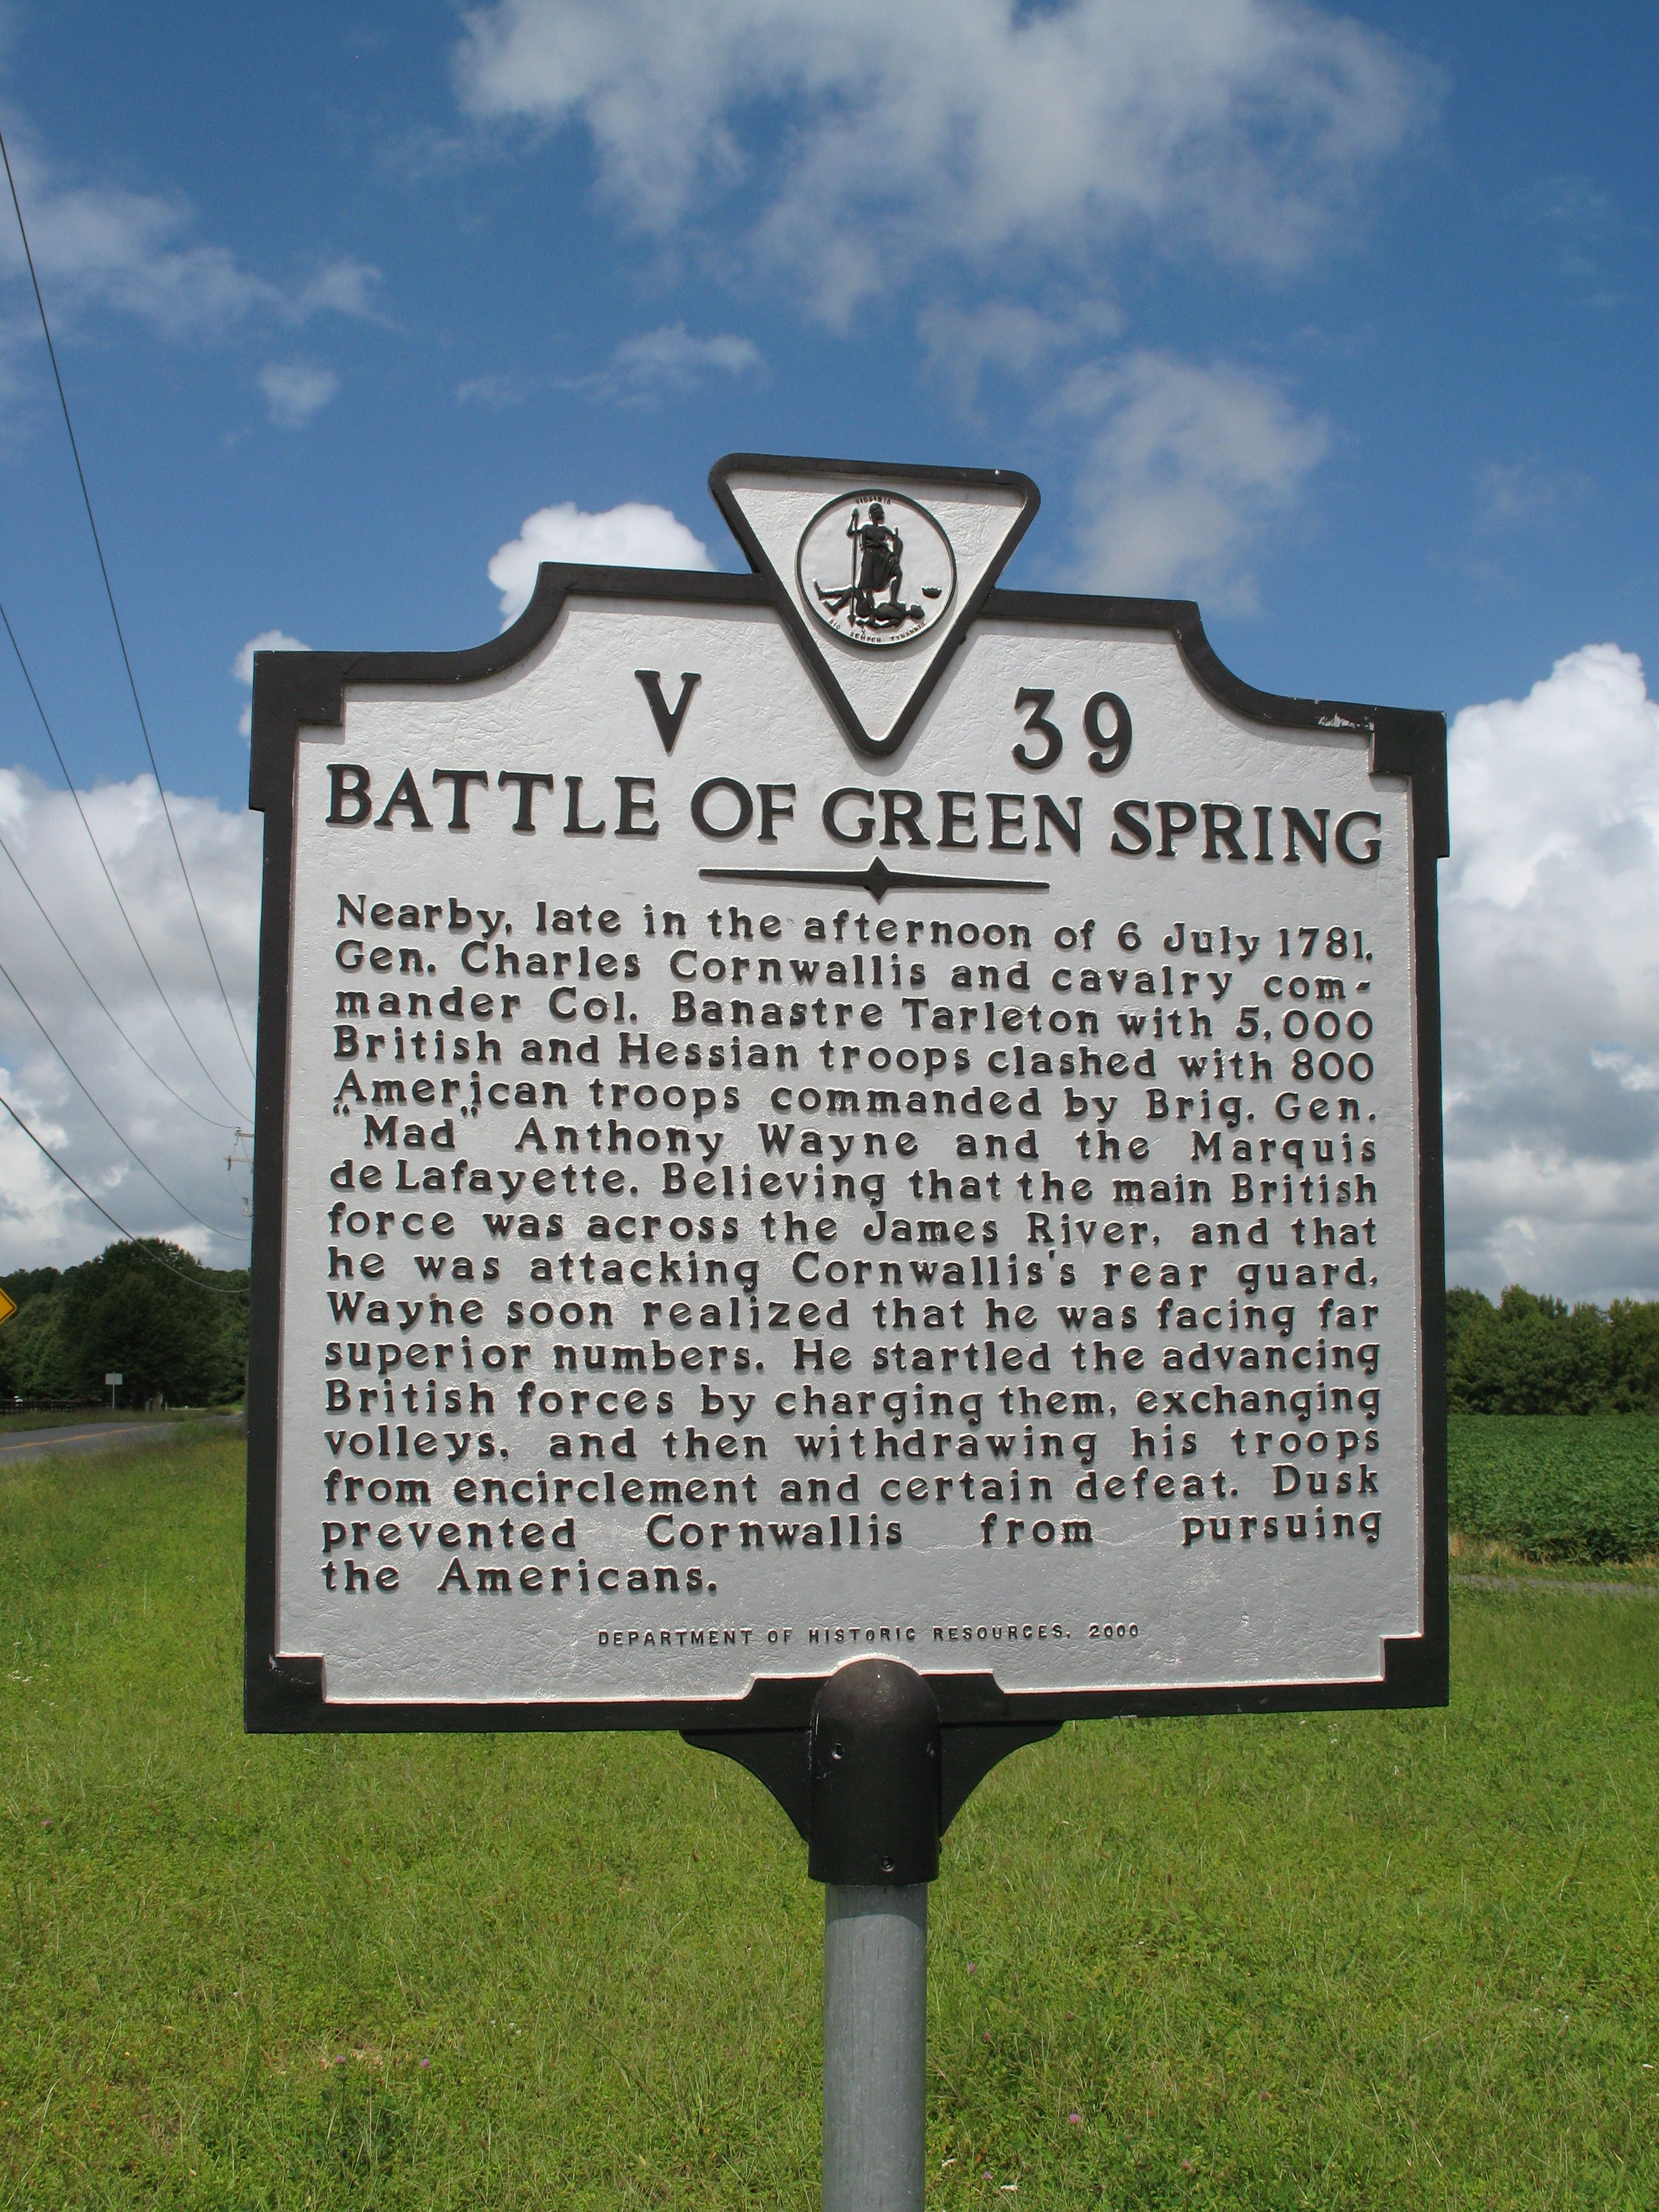 Historical marker for the Battle of Green Spring by Laura Troy on hmdb.org (reproduced under Fair Use).